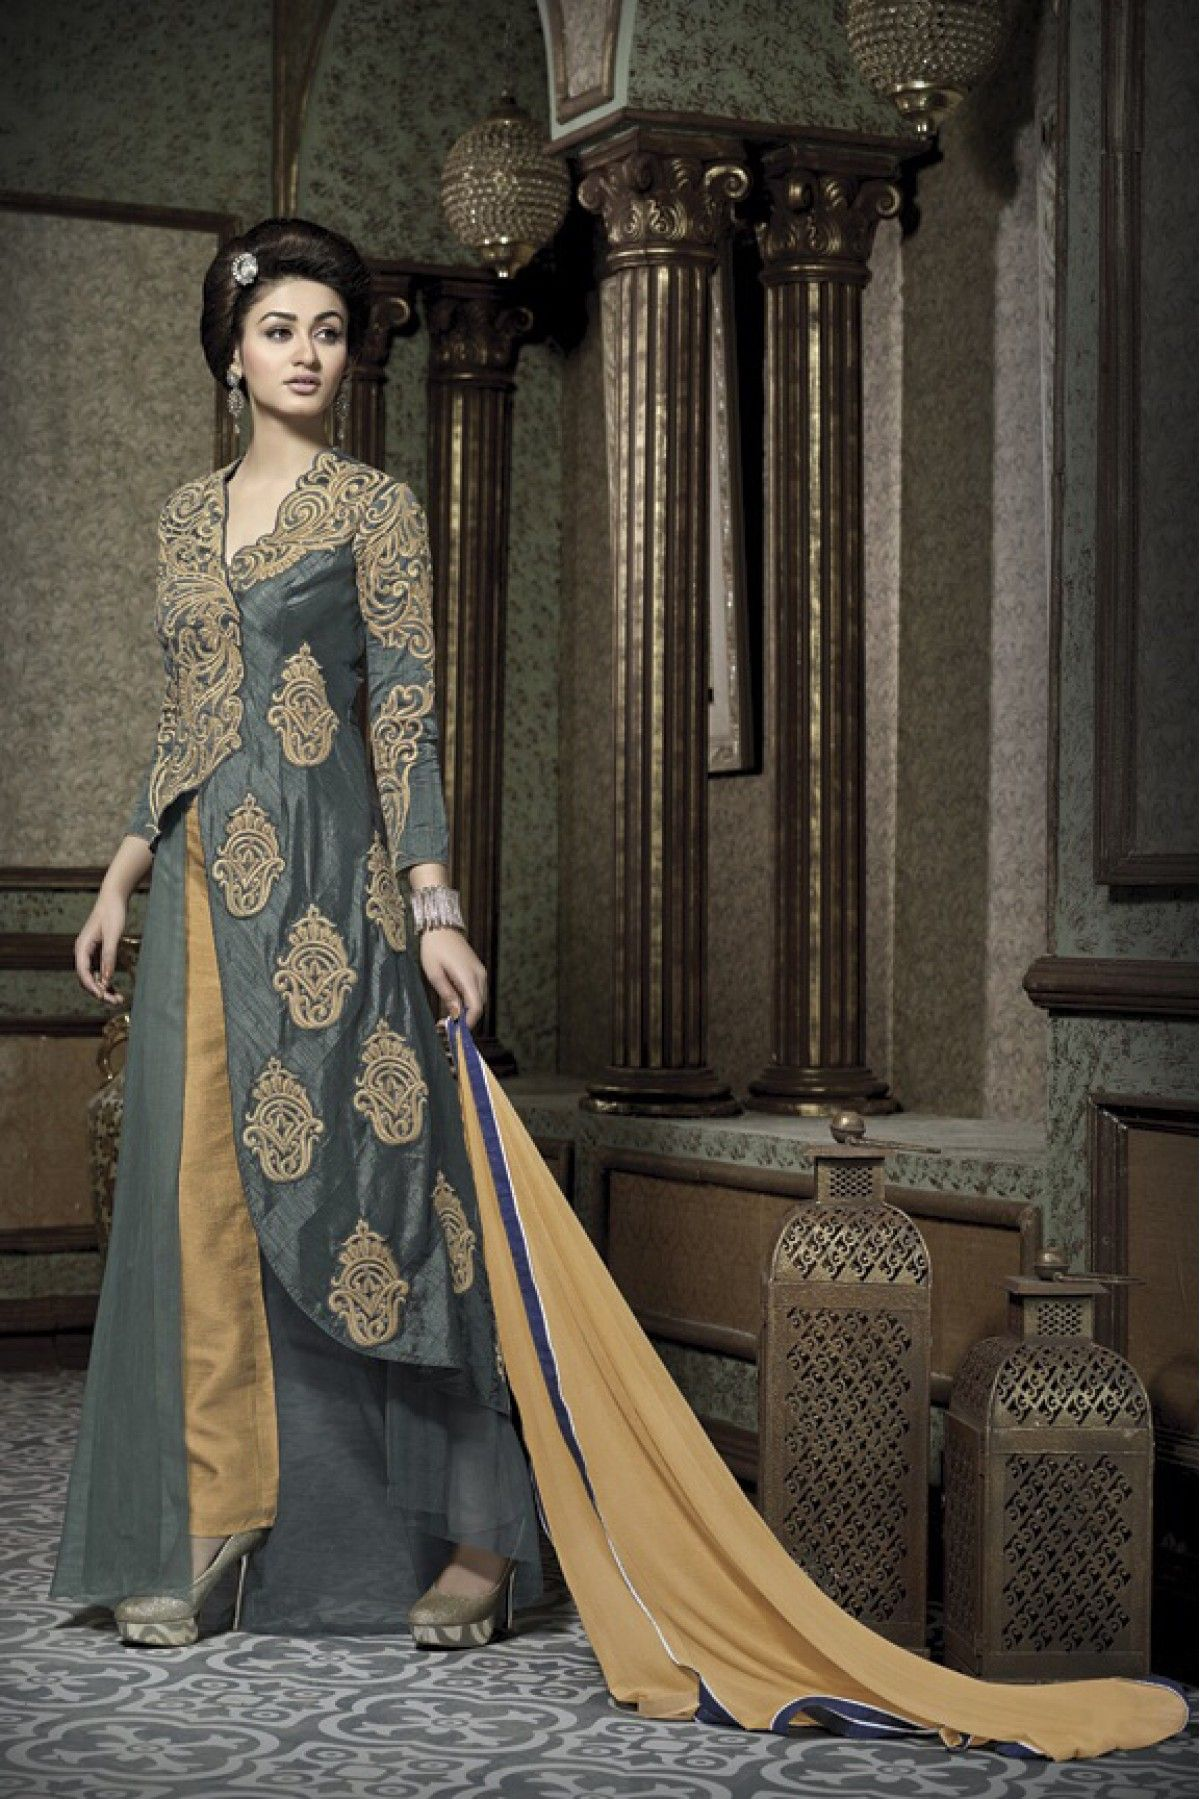 0427451808 Grey Colour Banarasi Silk Fabric Party Wear Semi Stitched Pant Style Comes  With Matching Bottom and Dupatta. This Suit Is Crafted With Embroidery,Zari  Work ...